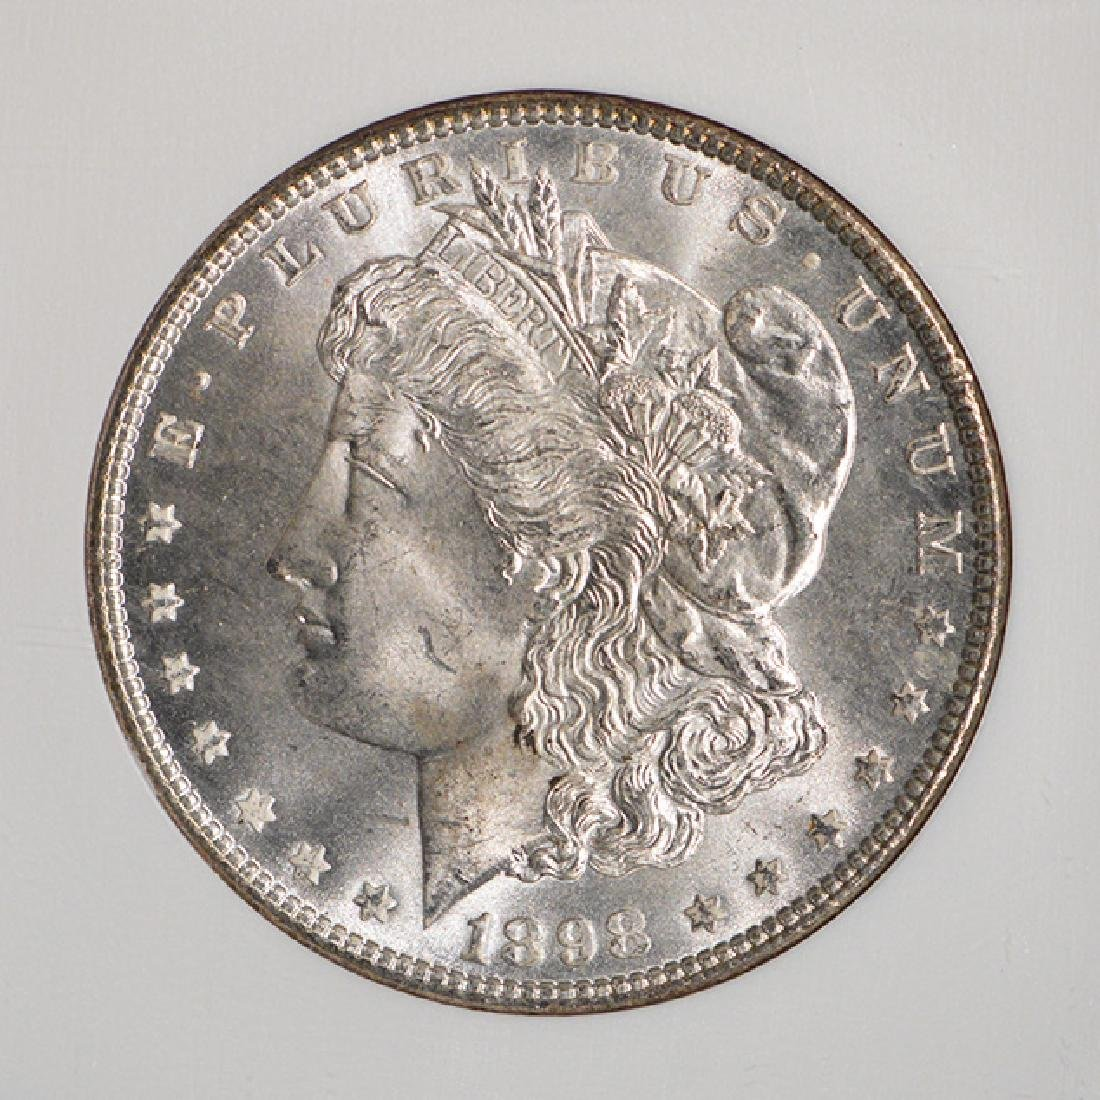 1898 $1 Morgan Silver Dollar Coin NGC MS65 - 3